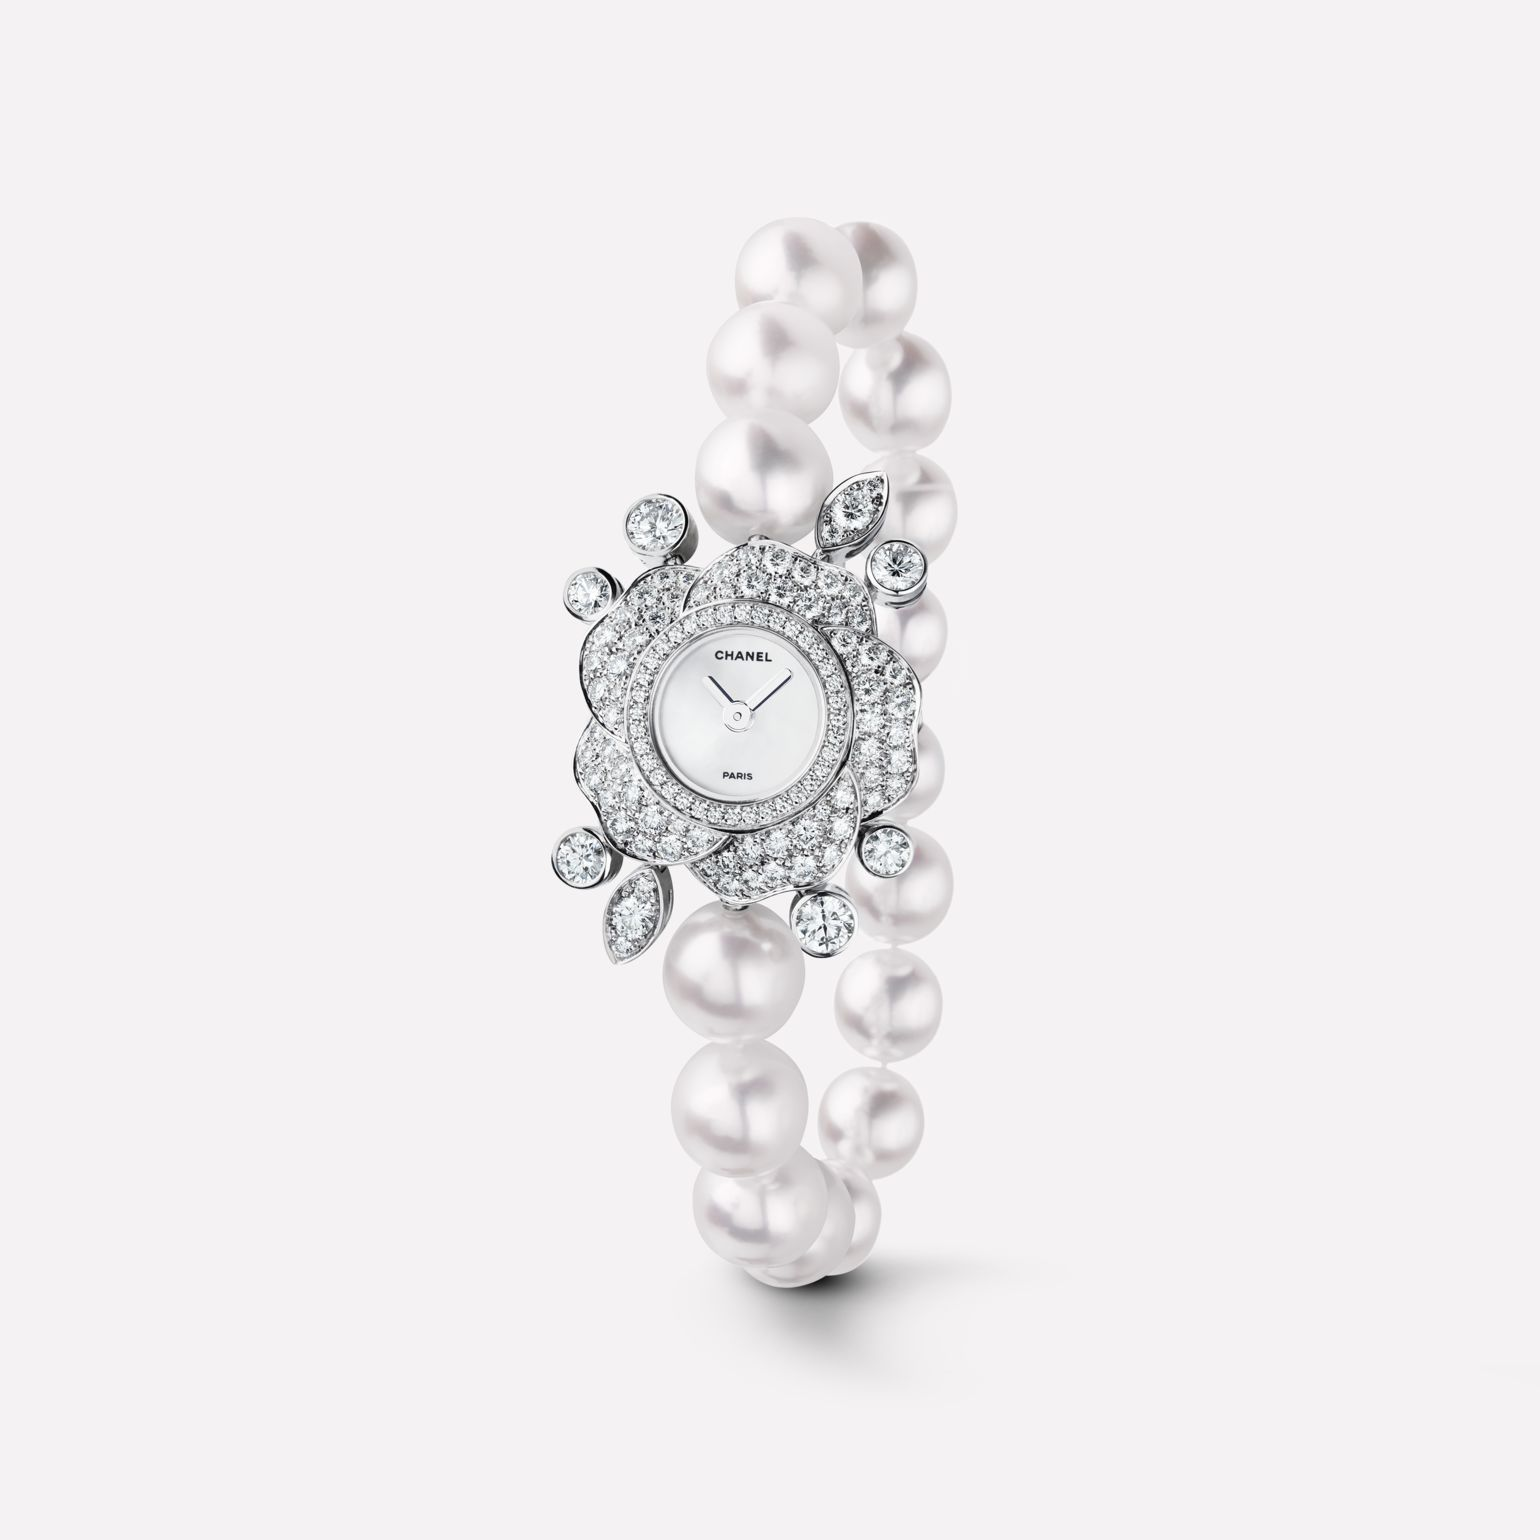 Camélia Jewelry Watch Camellia motif in 18K white gold with diamonds, and cultured pearls